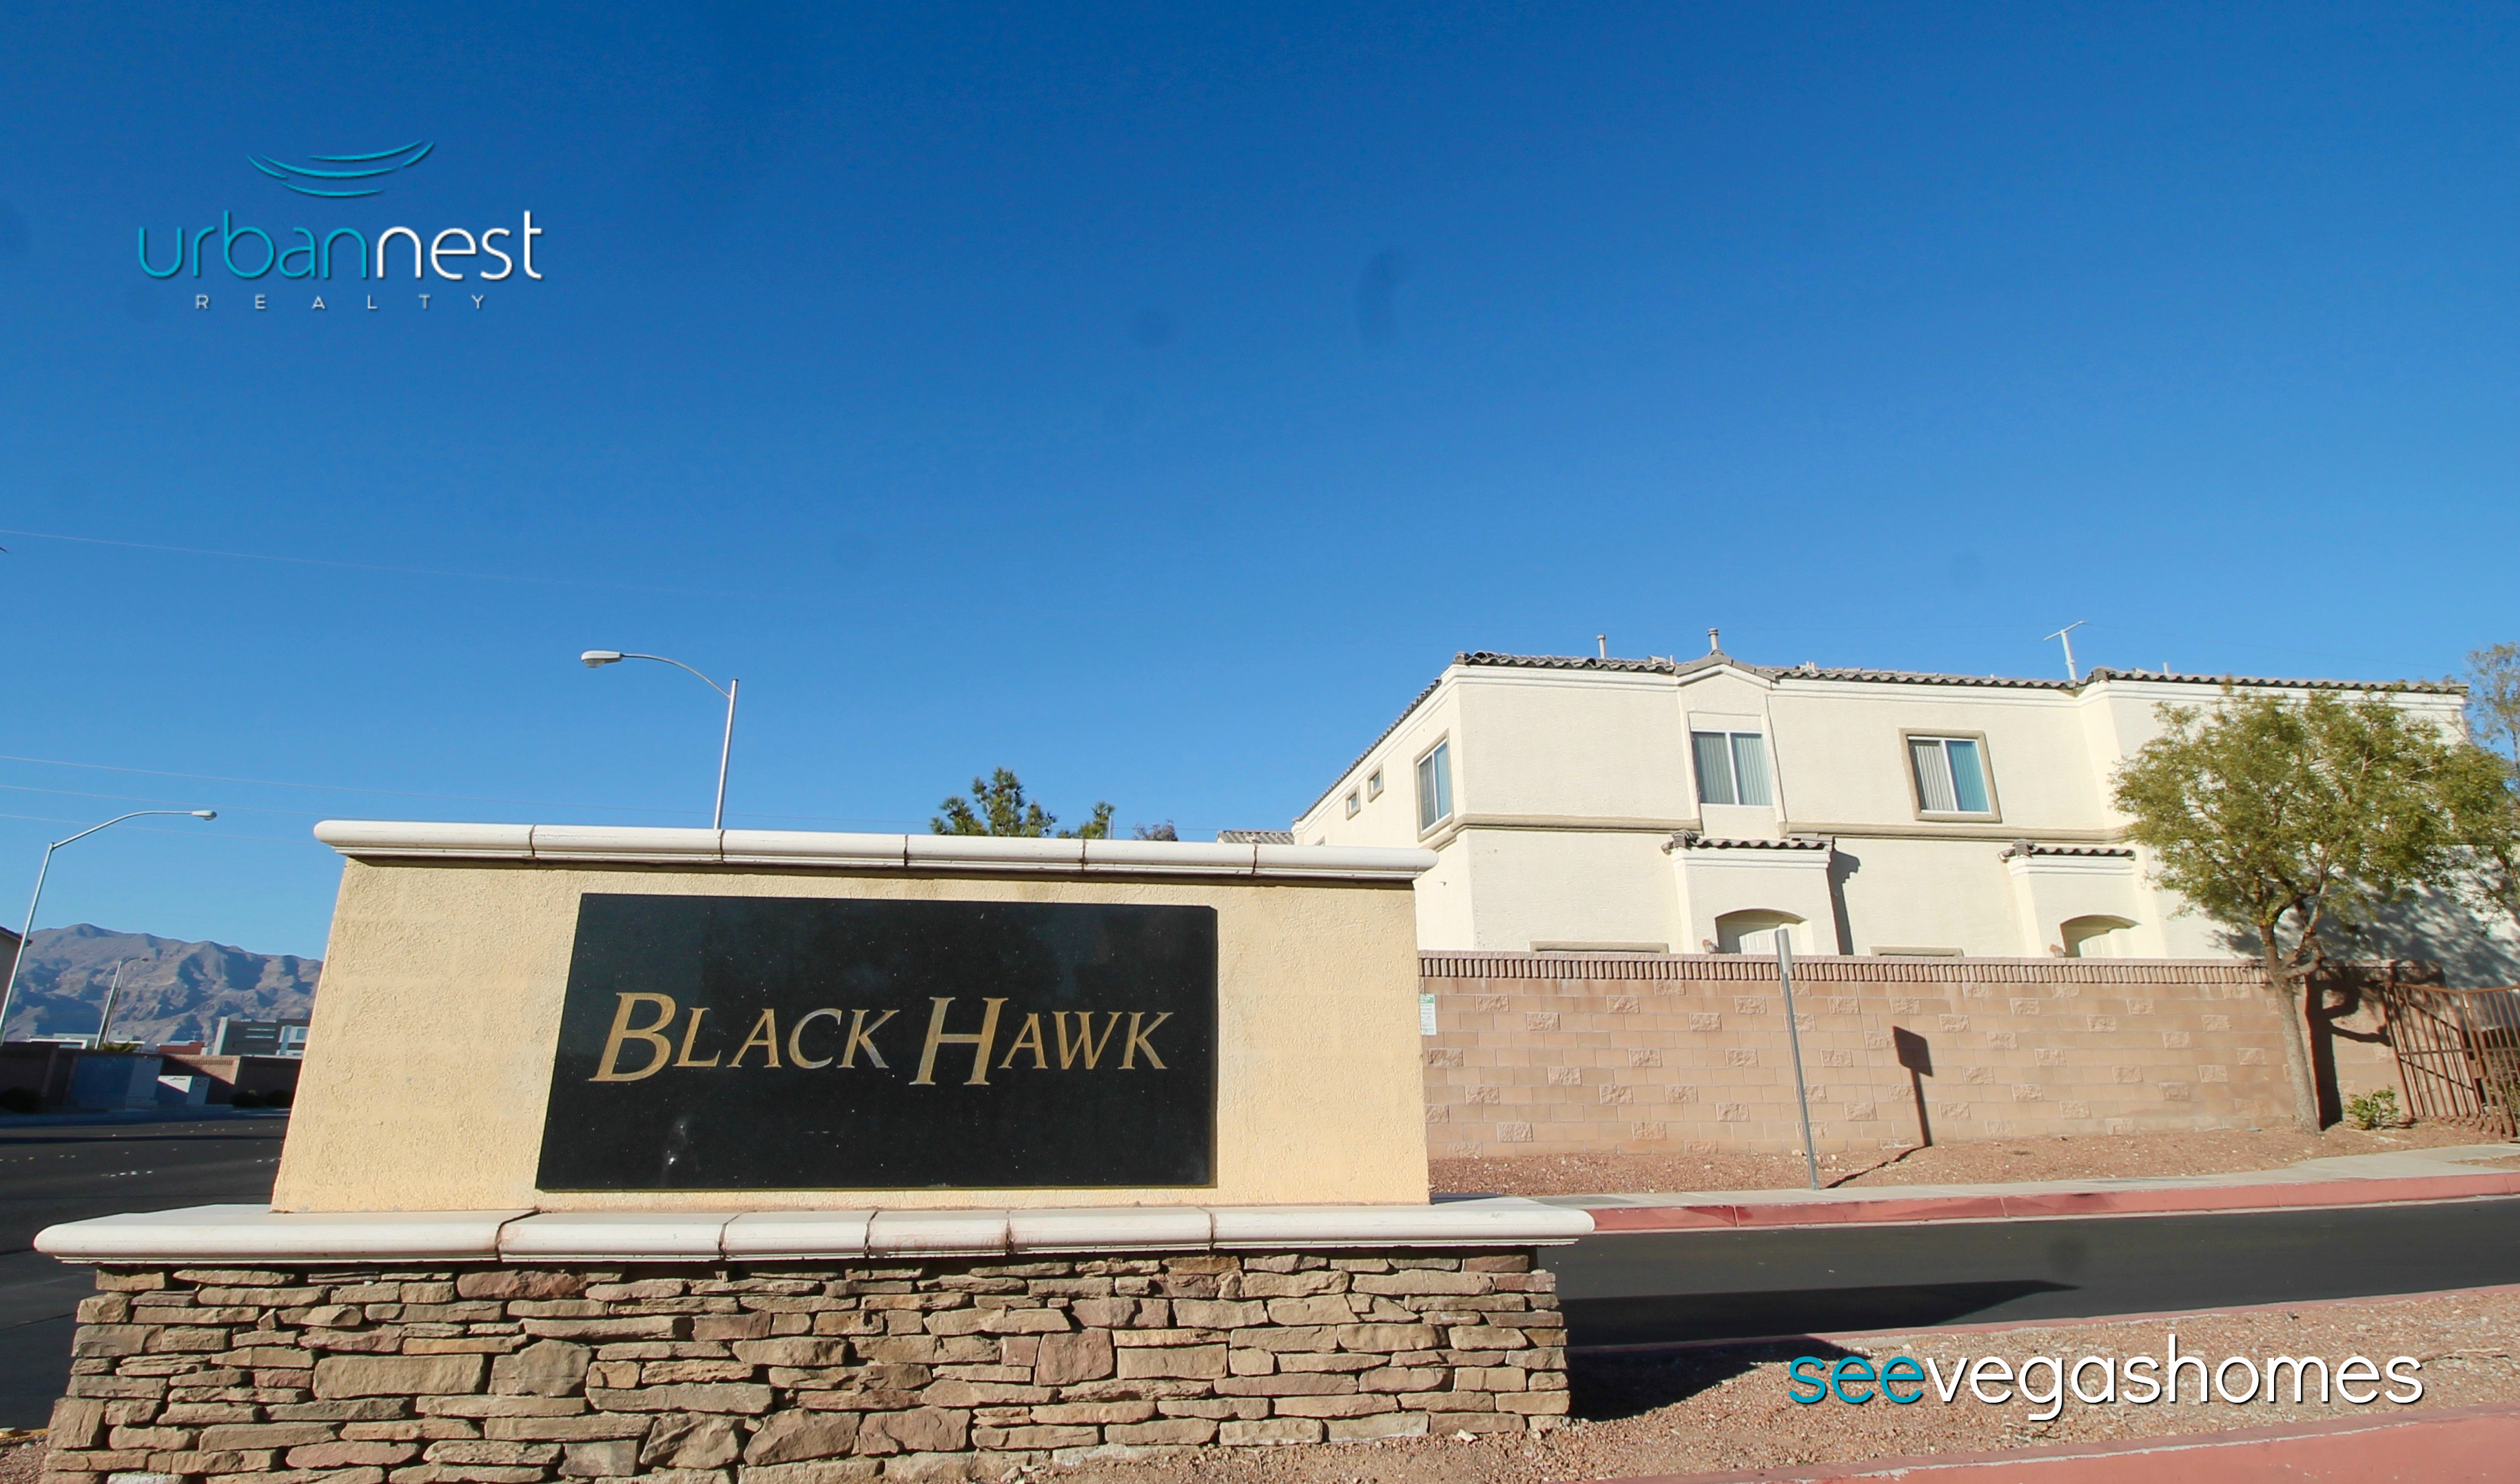 Black Hawk Condos Centennial Highlands North Las Vegas NV 89081 SeeVegasHomes